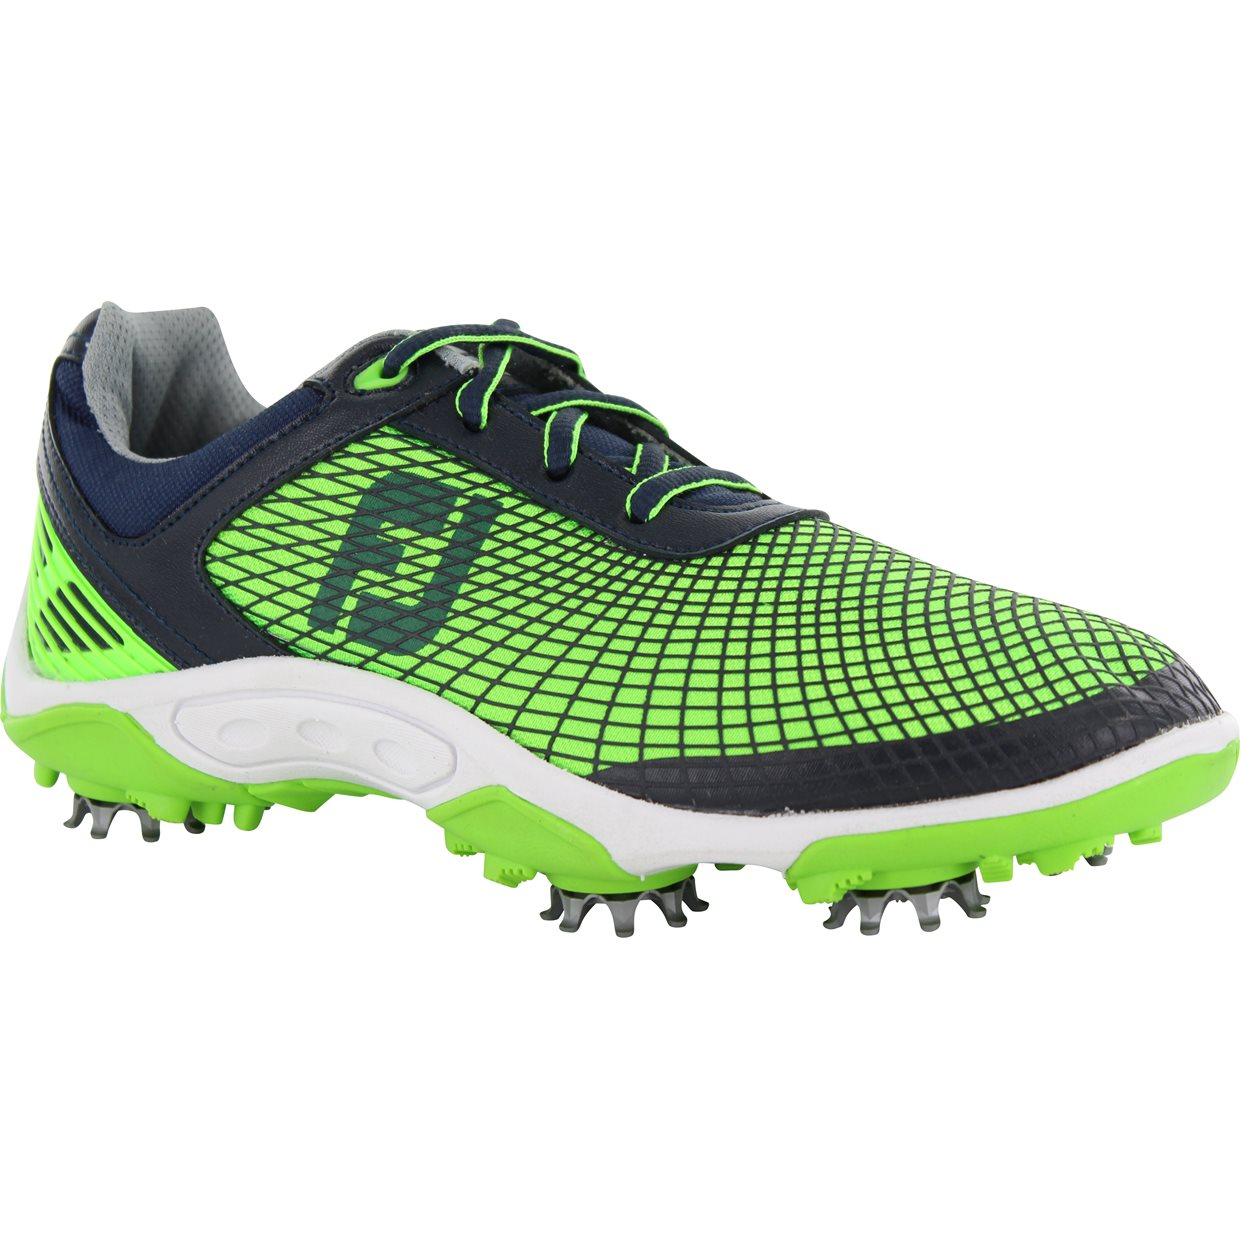 Youth Size  Golf Shoes